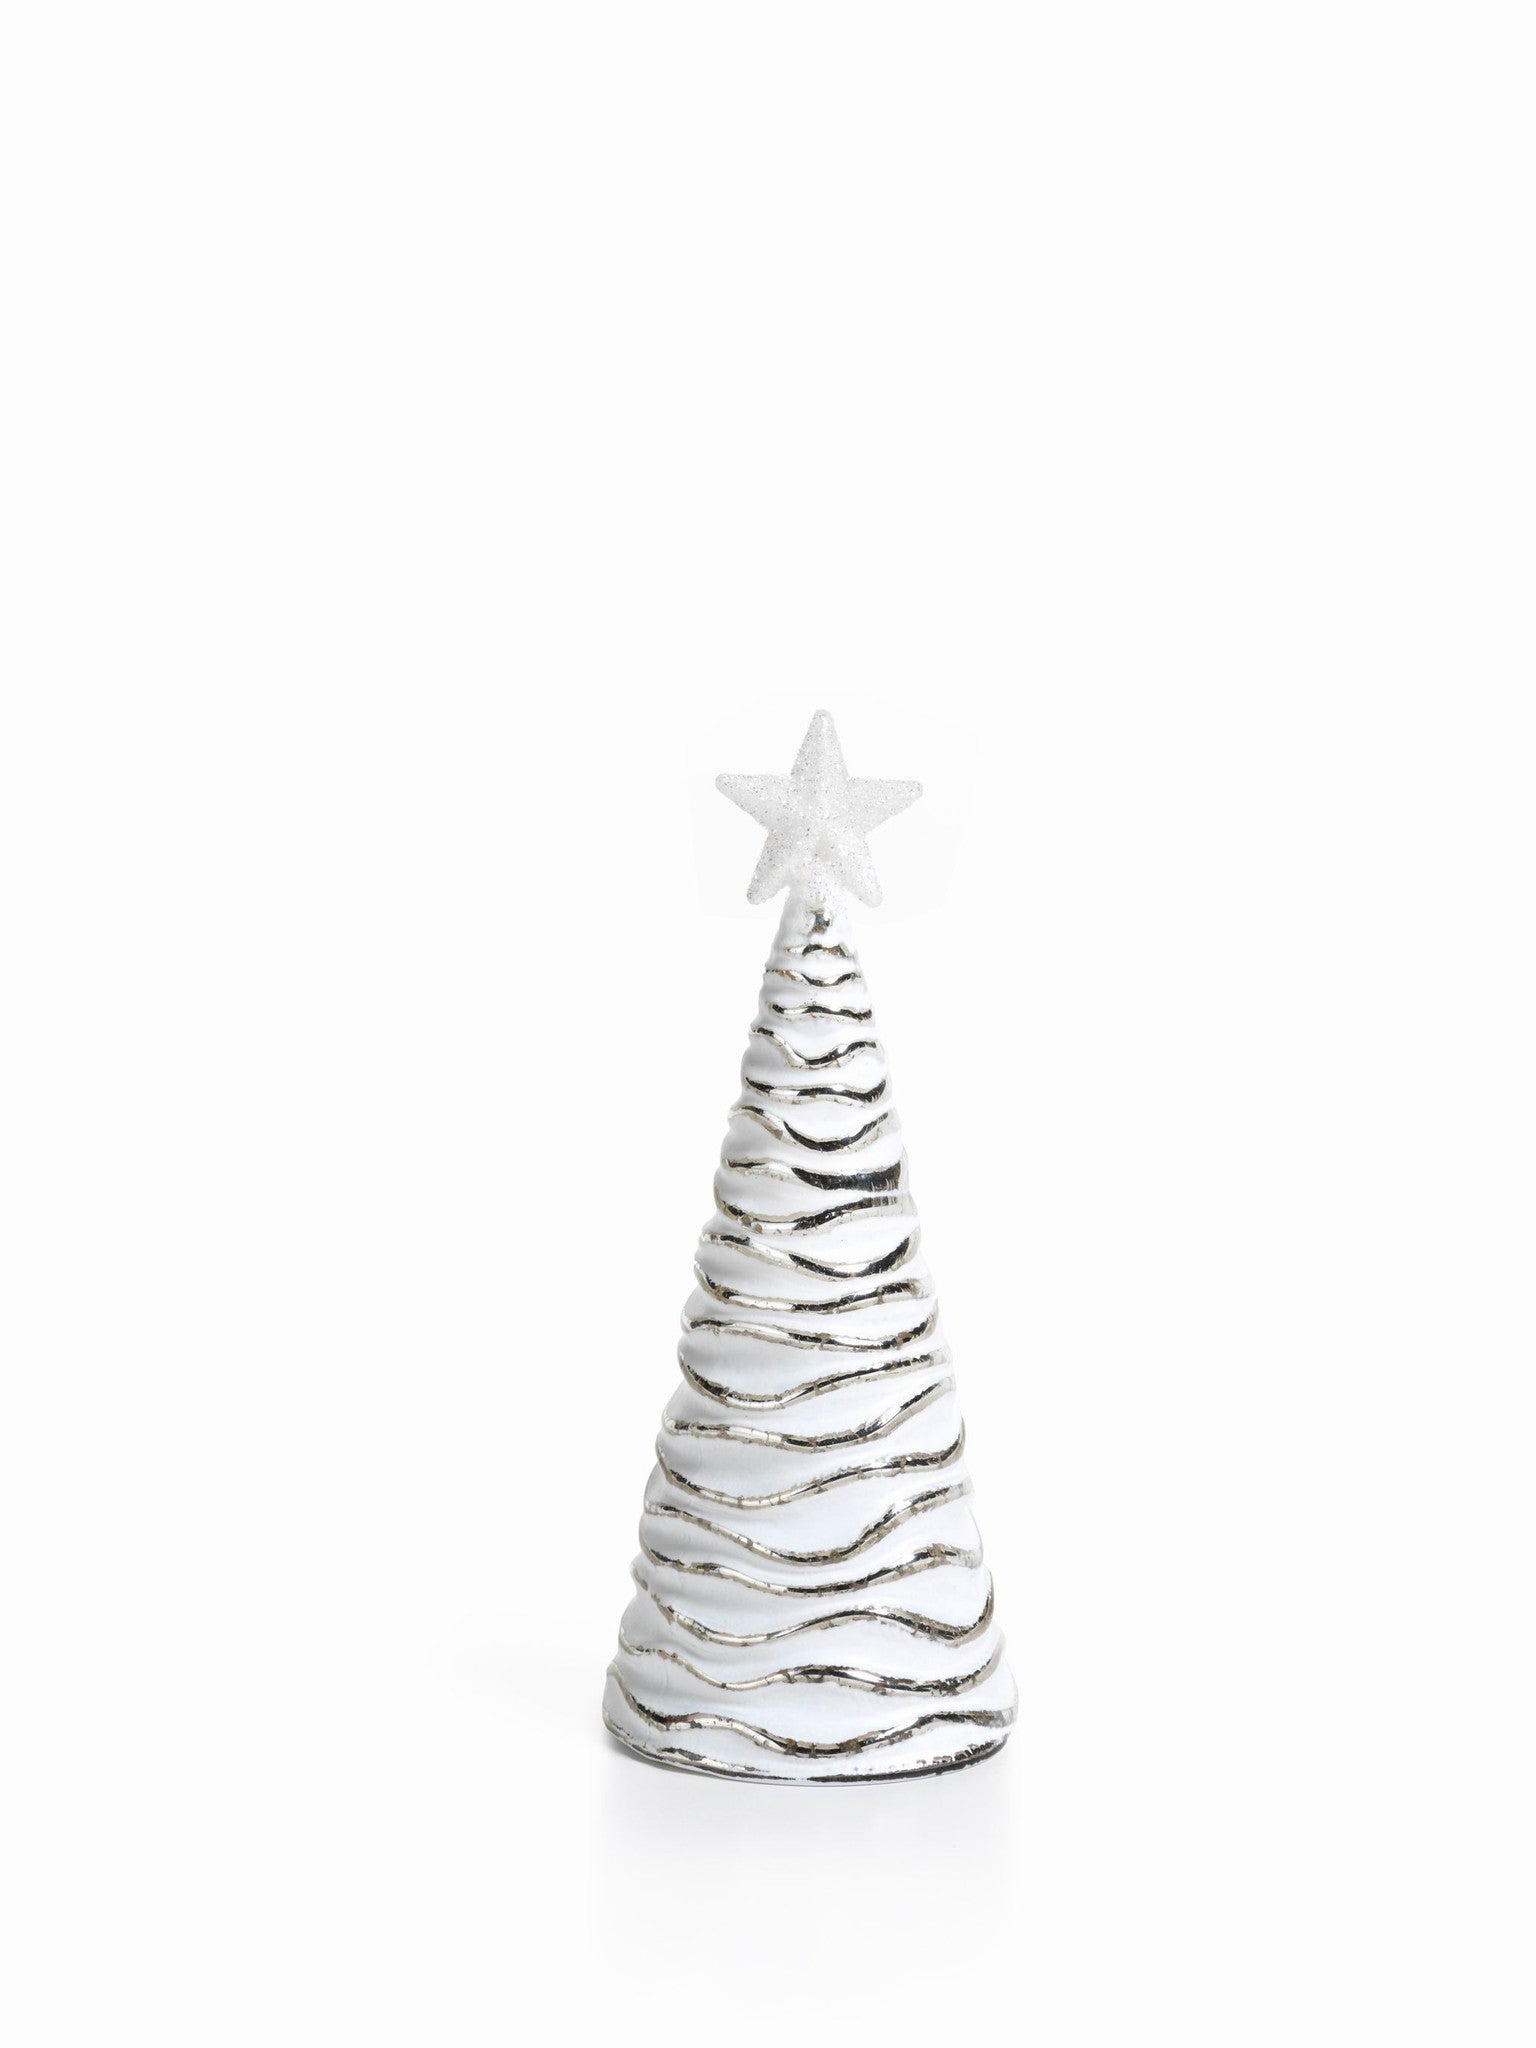 LED Glass Decorative Tree - Silver - Set of 6 - Medium / Wavy - CARLYLE AVENUE - 4